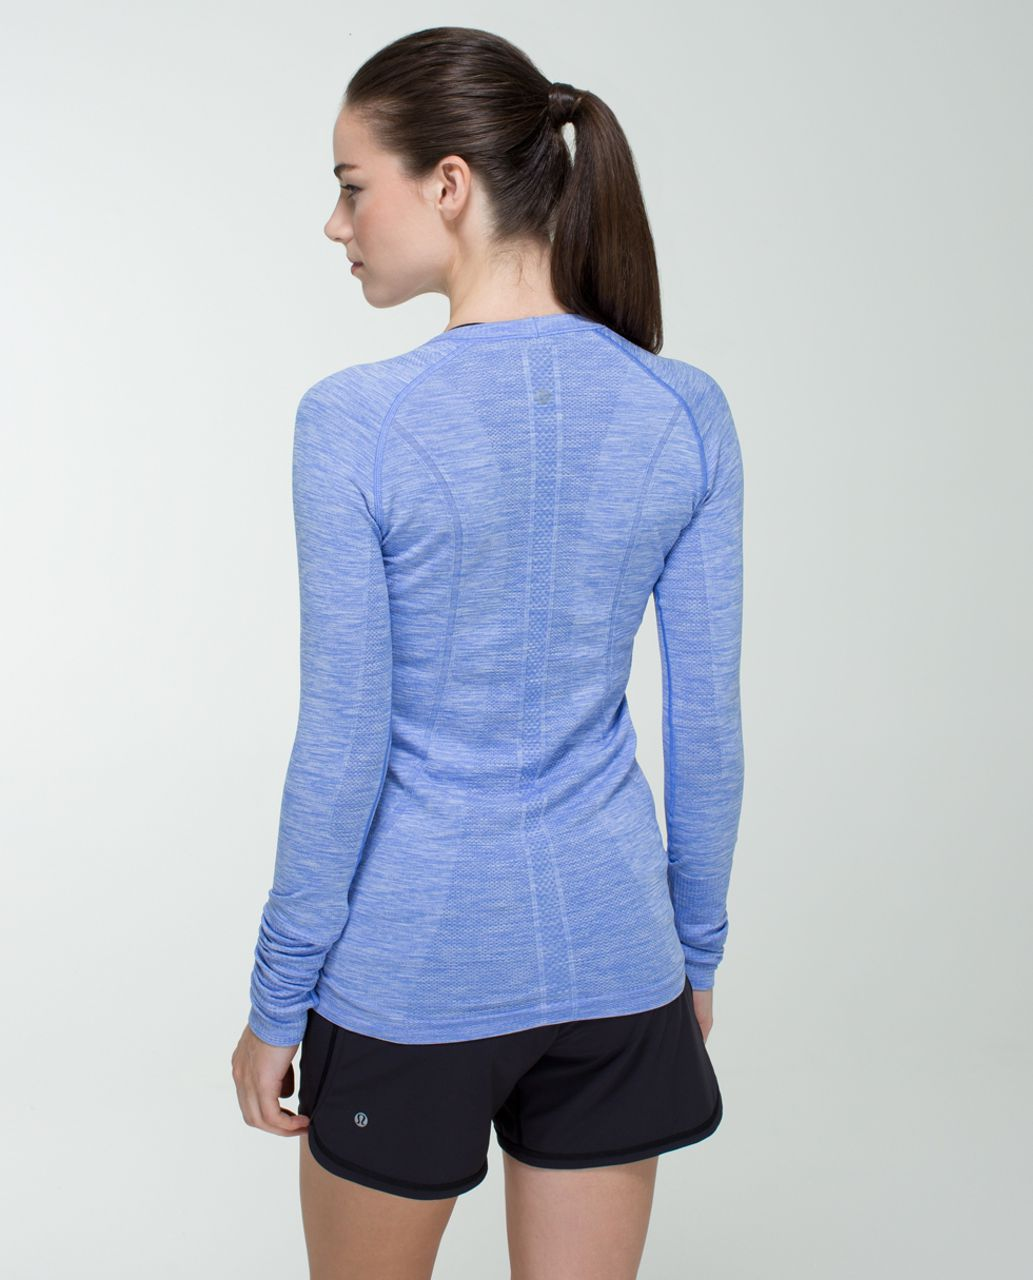 88d3e9720b8b3 Lululemon Run  Swiftly Tech Long Sleeve - Heathered Lullaby - lulu fanatics